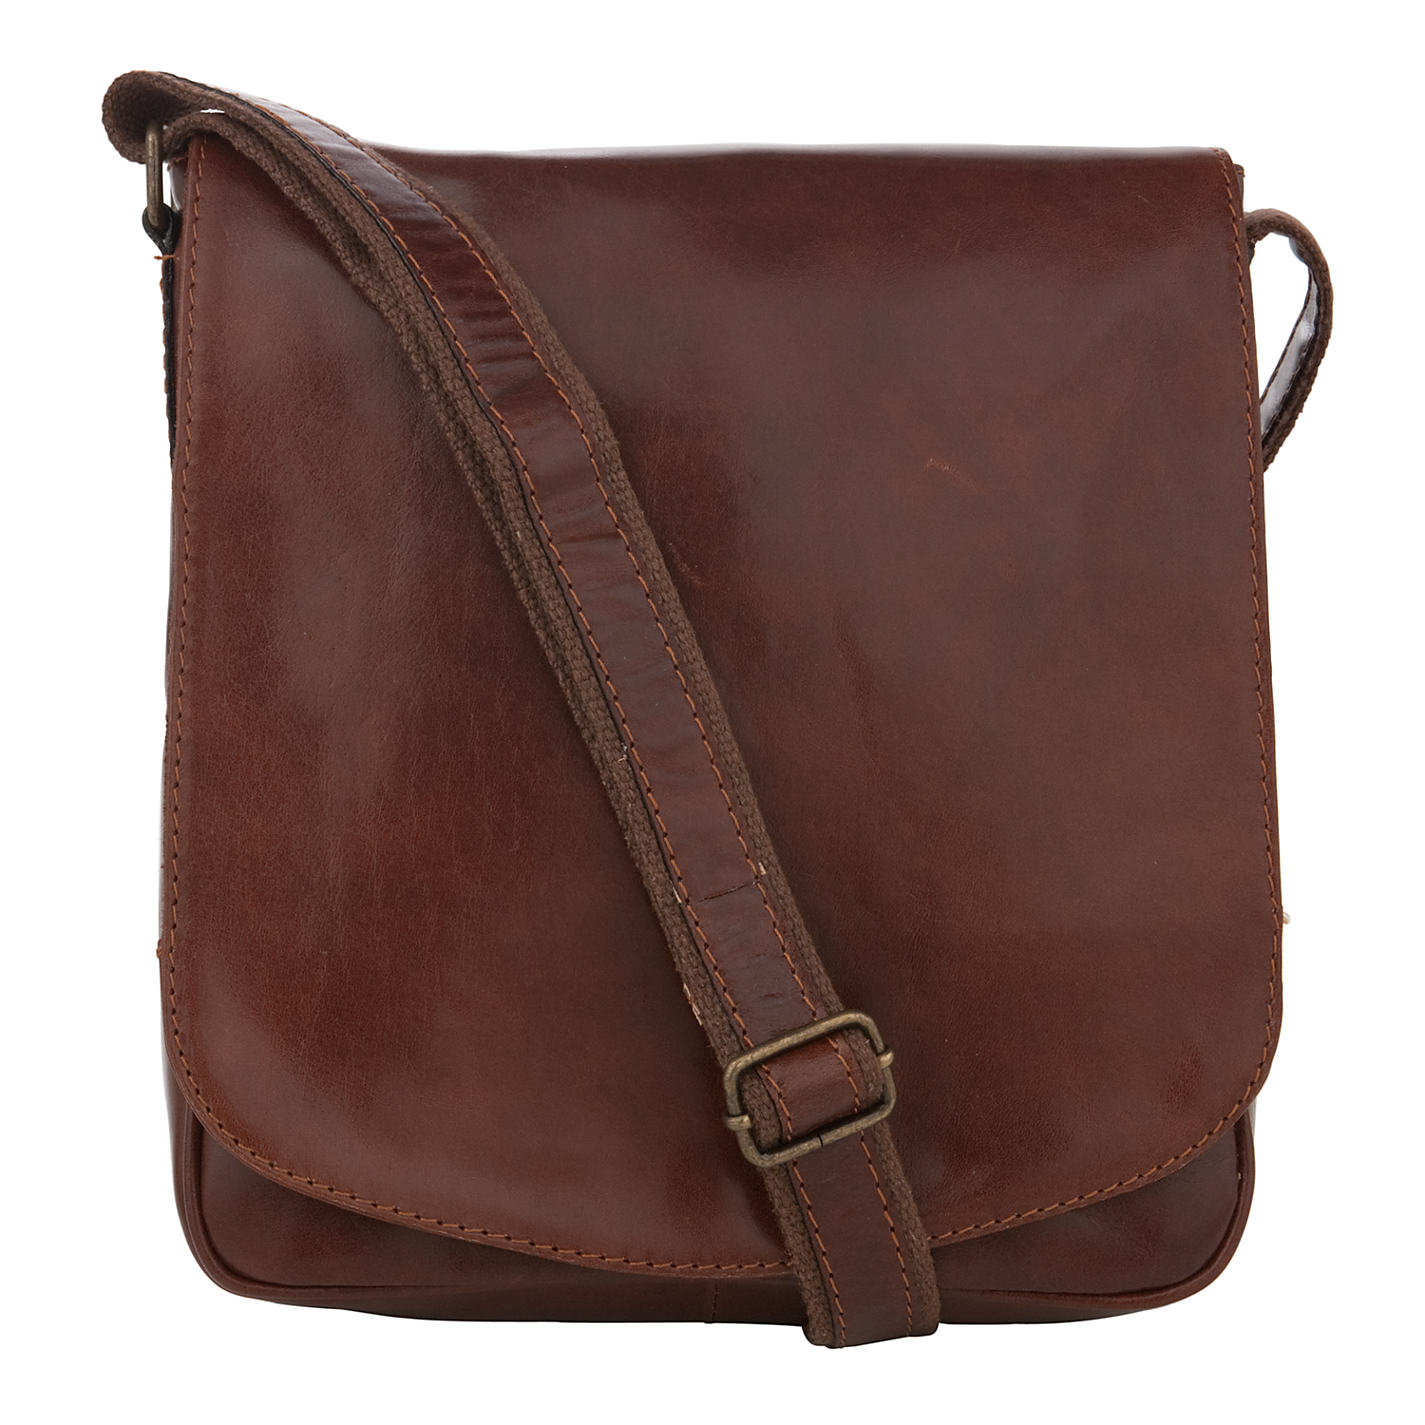 Mens Shoulder Bag Next – Shoulder Travel Bag